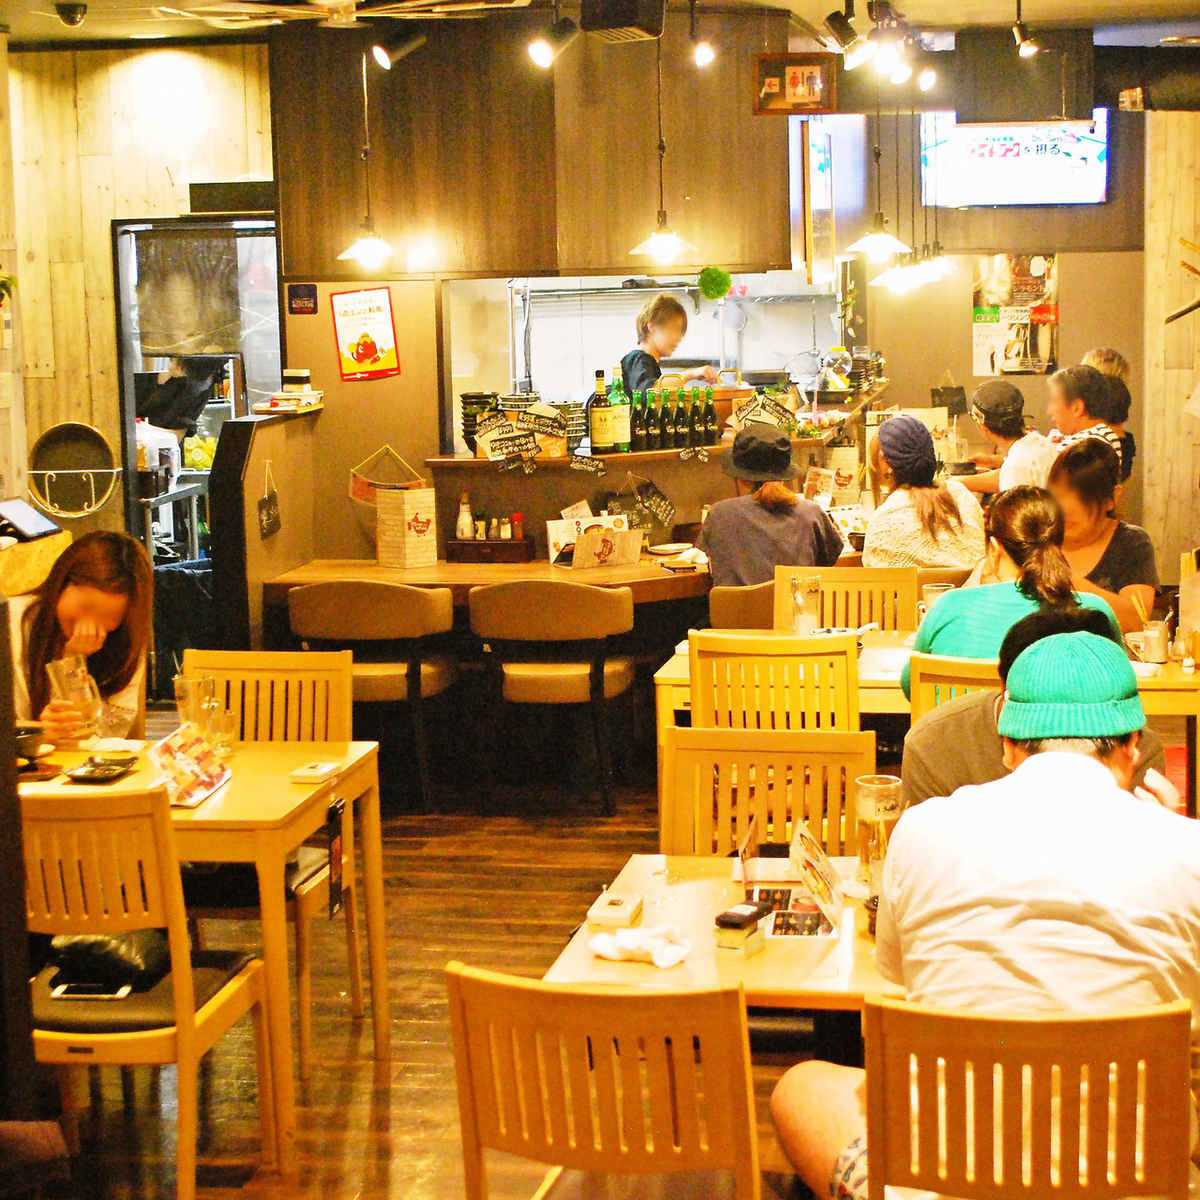 Counter seats / table seats / digging seats and stylish yakitori pubs that can be used depending on the application